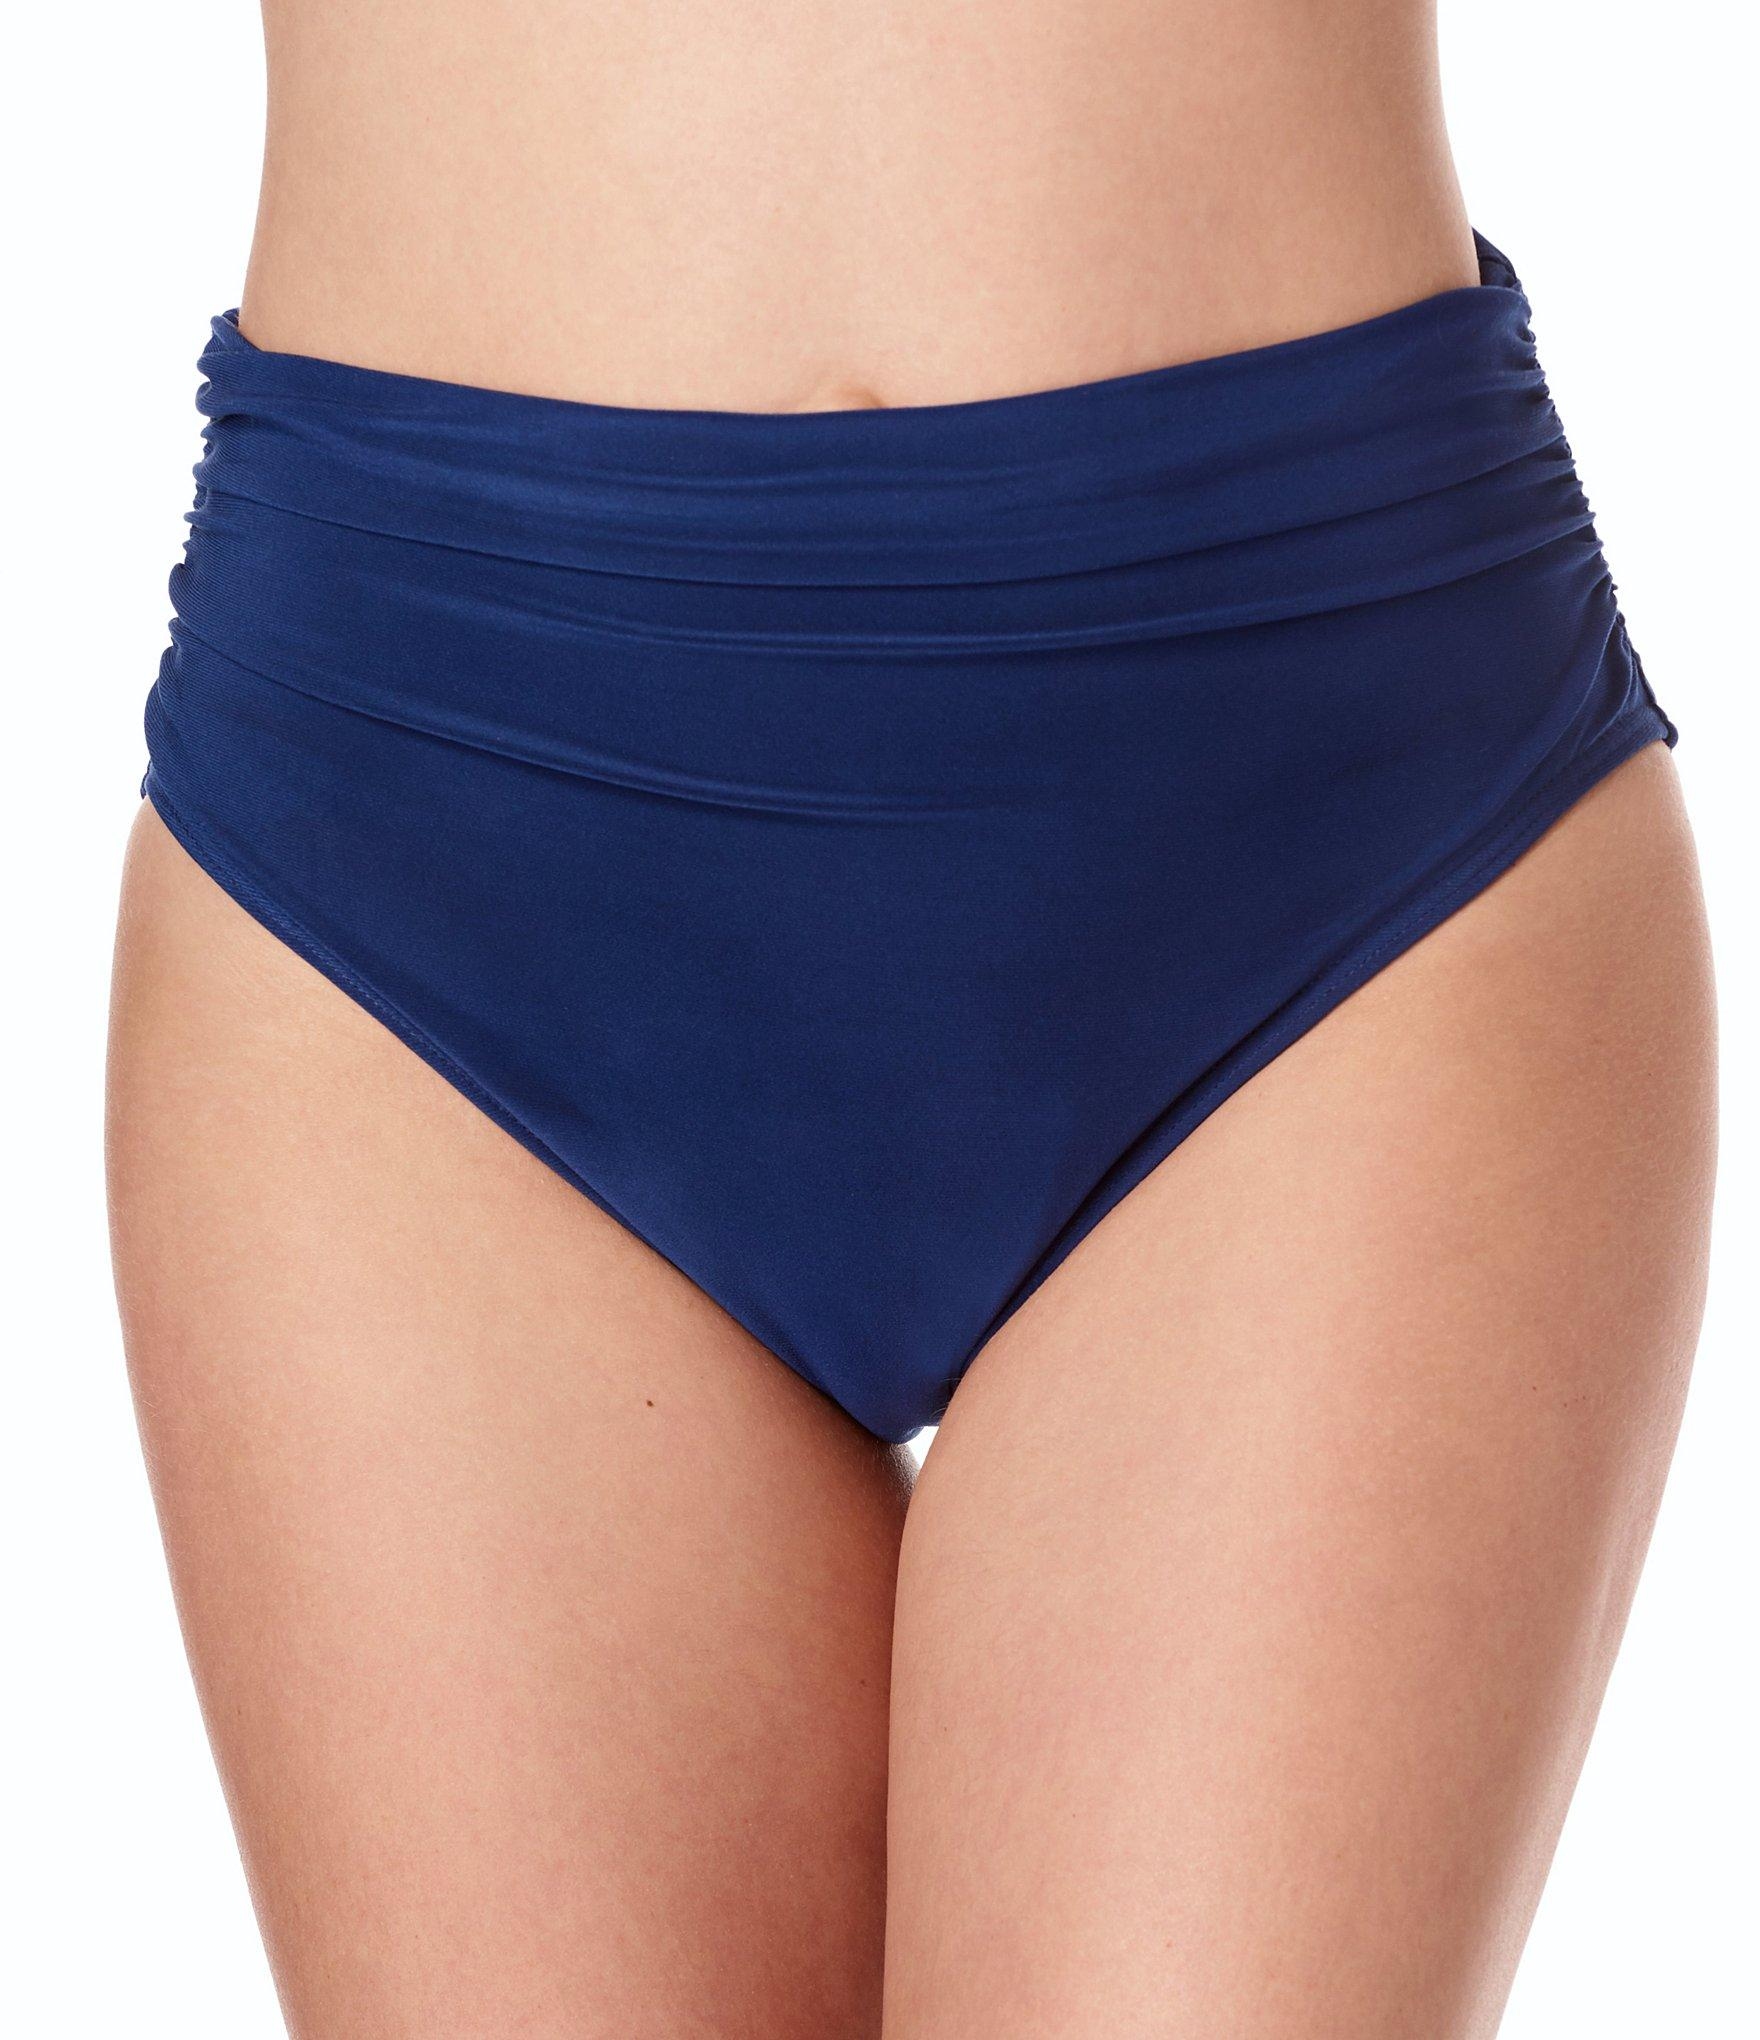 82398bc778840 ... Solid Jersey Brief Shirred Swimsuit Bottom - Lyst. View fullscreen